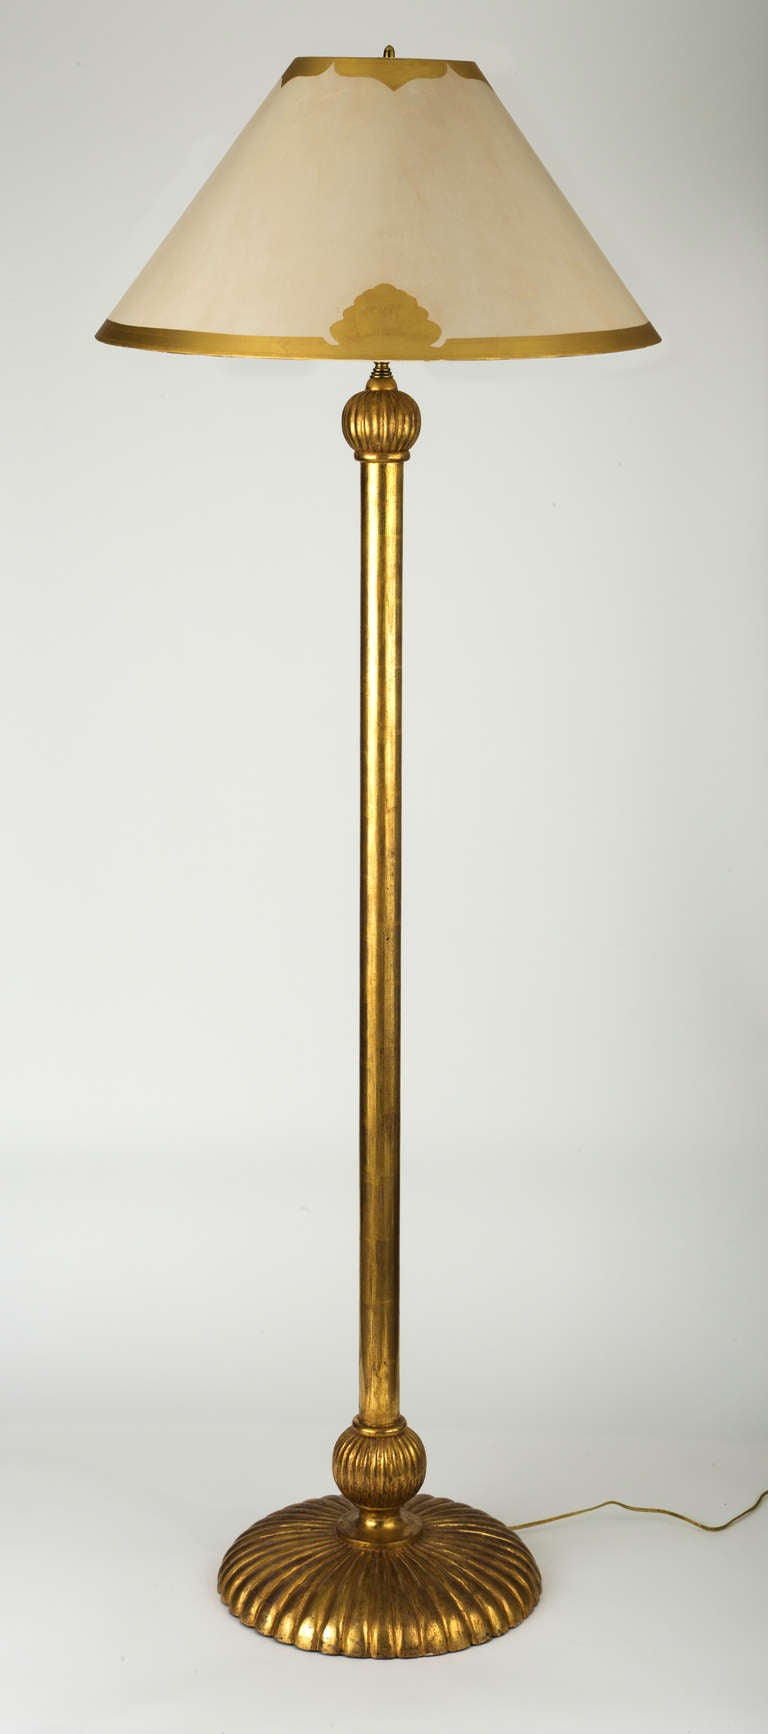 Tall Floor Lamps Bing Images